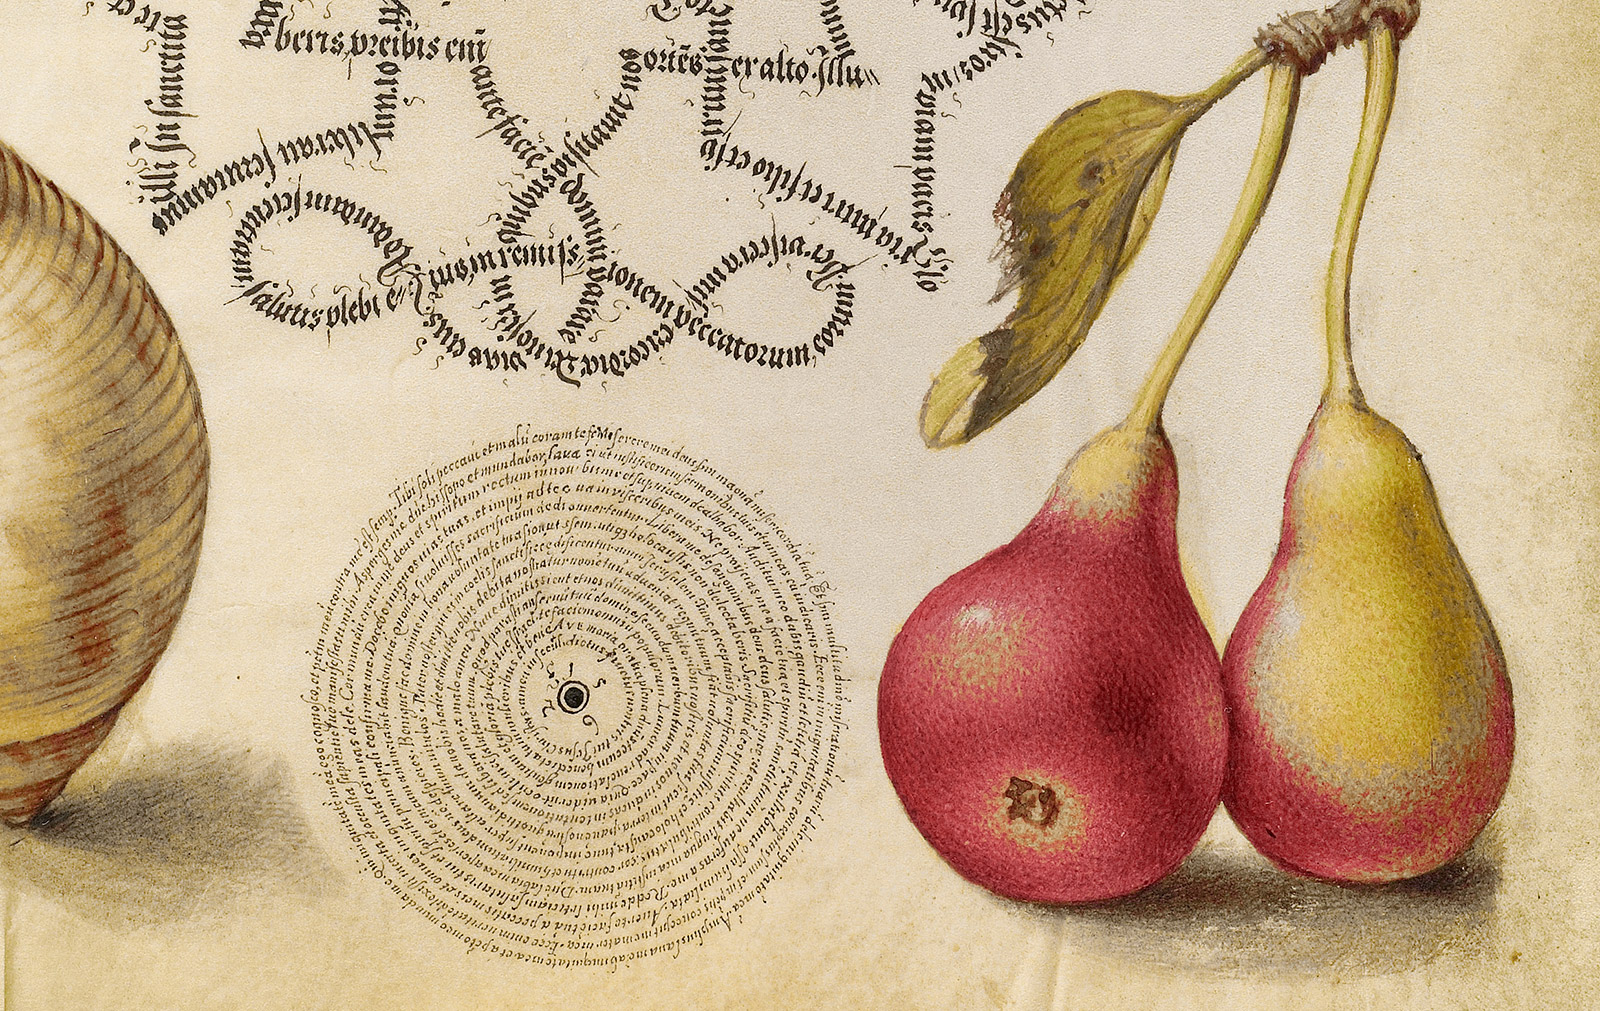 Detail of a manuscript page showing highly realistic painted pears next to intricate calligraphy written in an intricate spiral